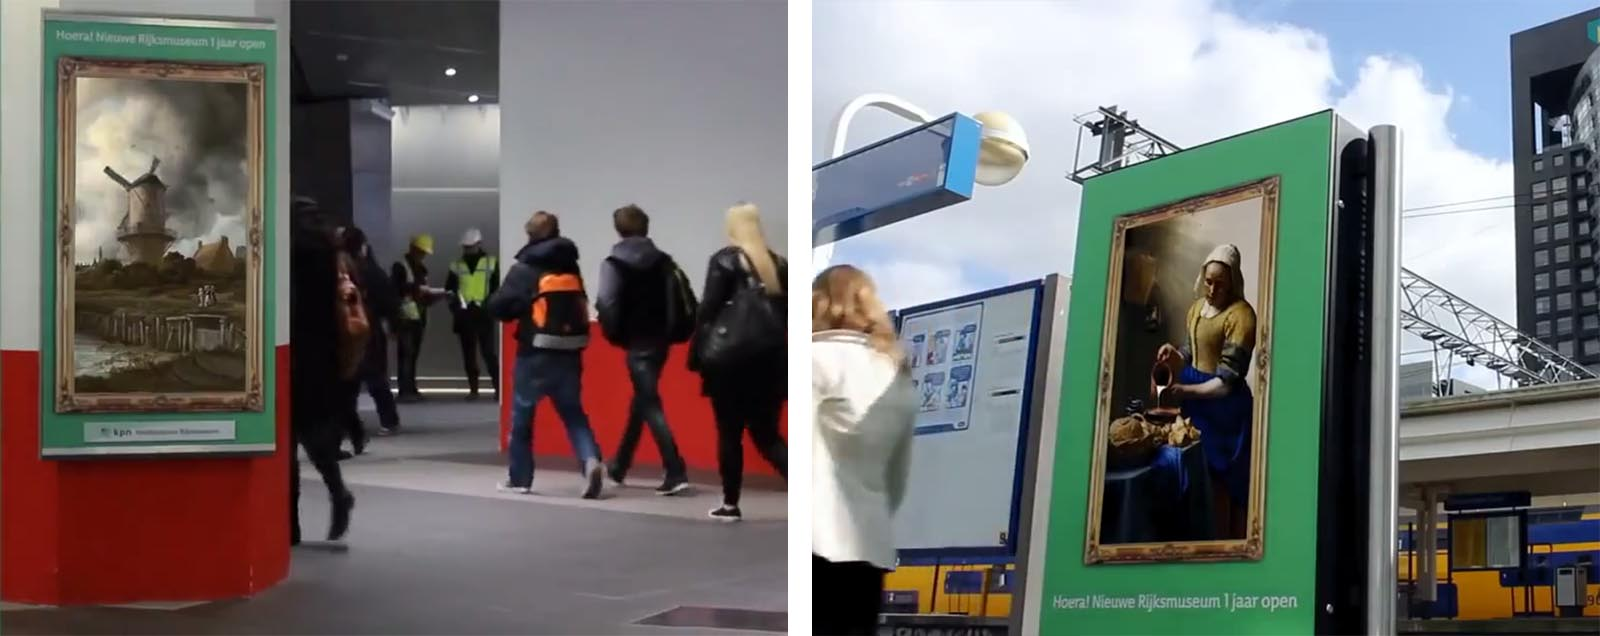 Animated paintings on the metro platforms in Amsterdam